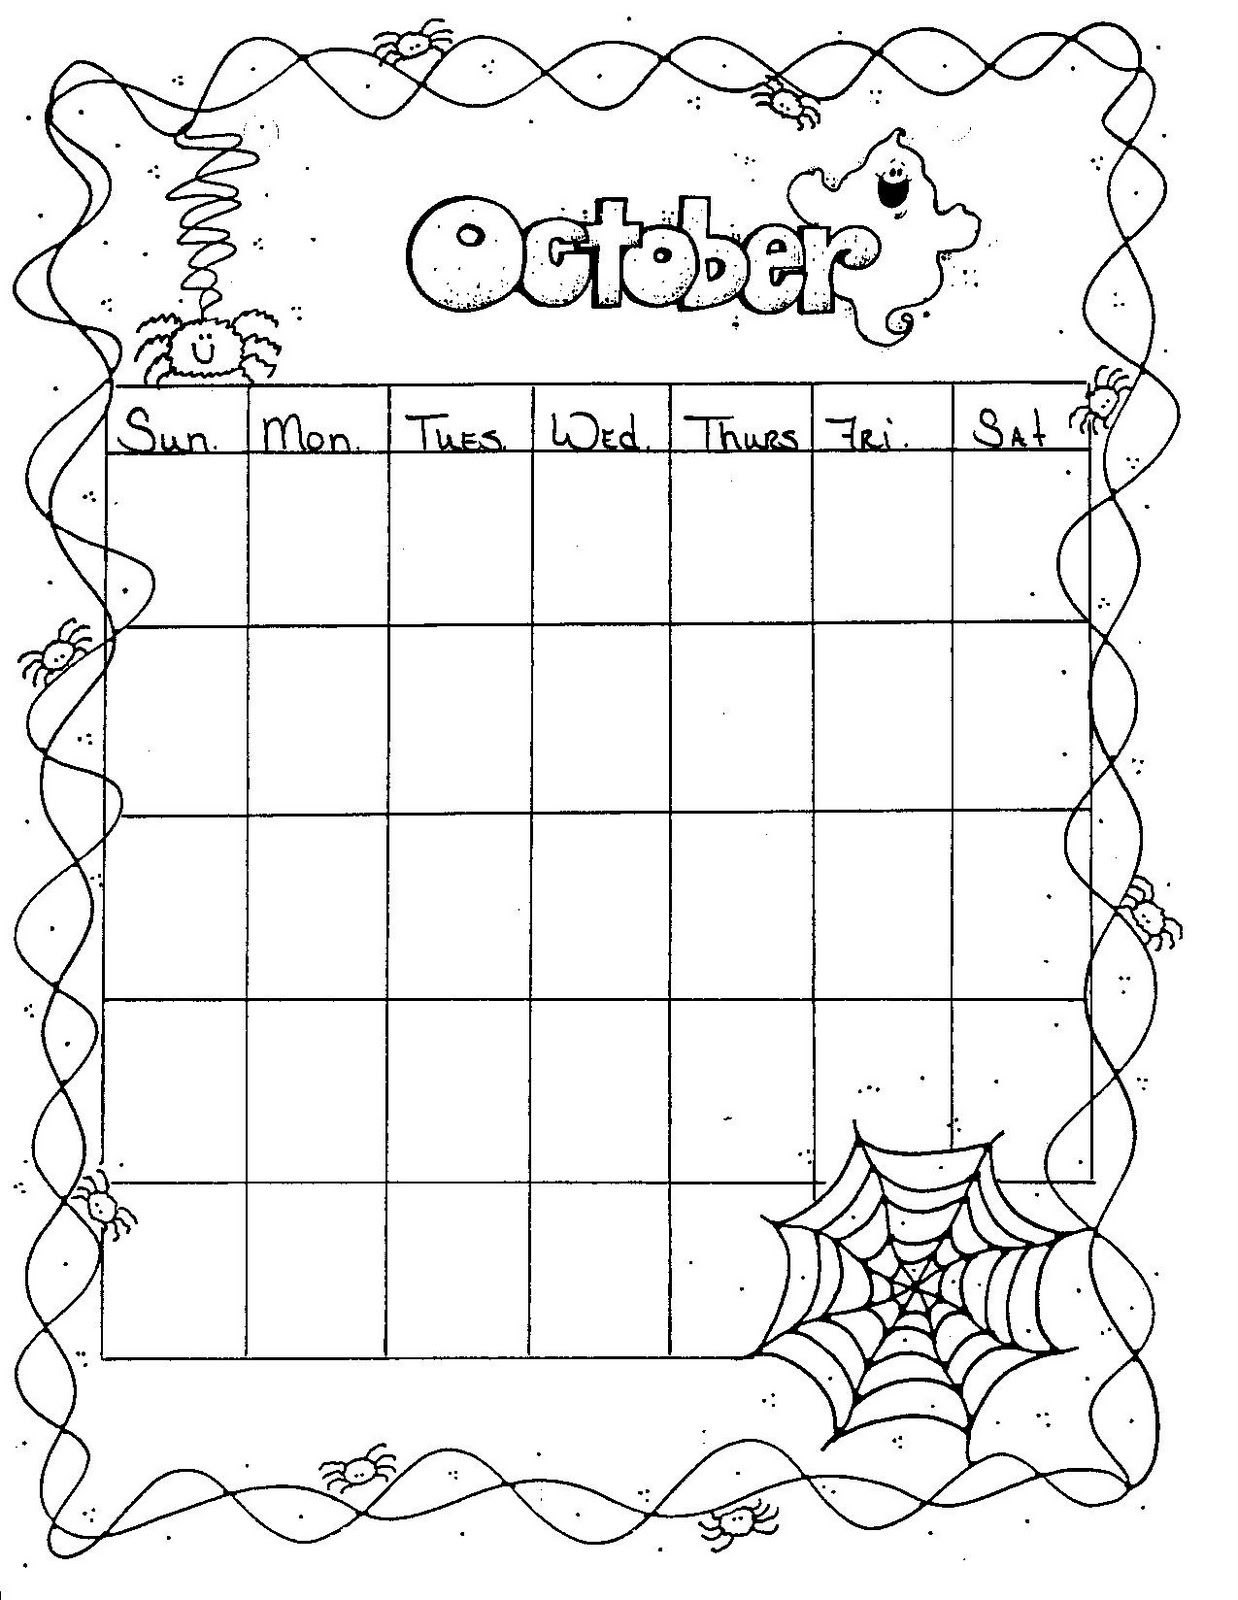 Weekly Calendar Blank Page : Connie s file cabinet monthly blank calendar pages for a year